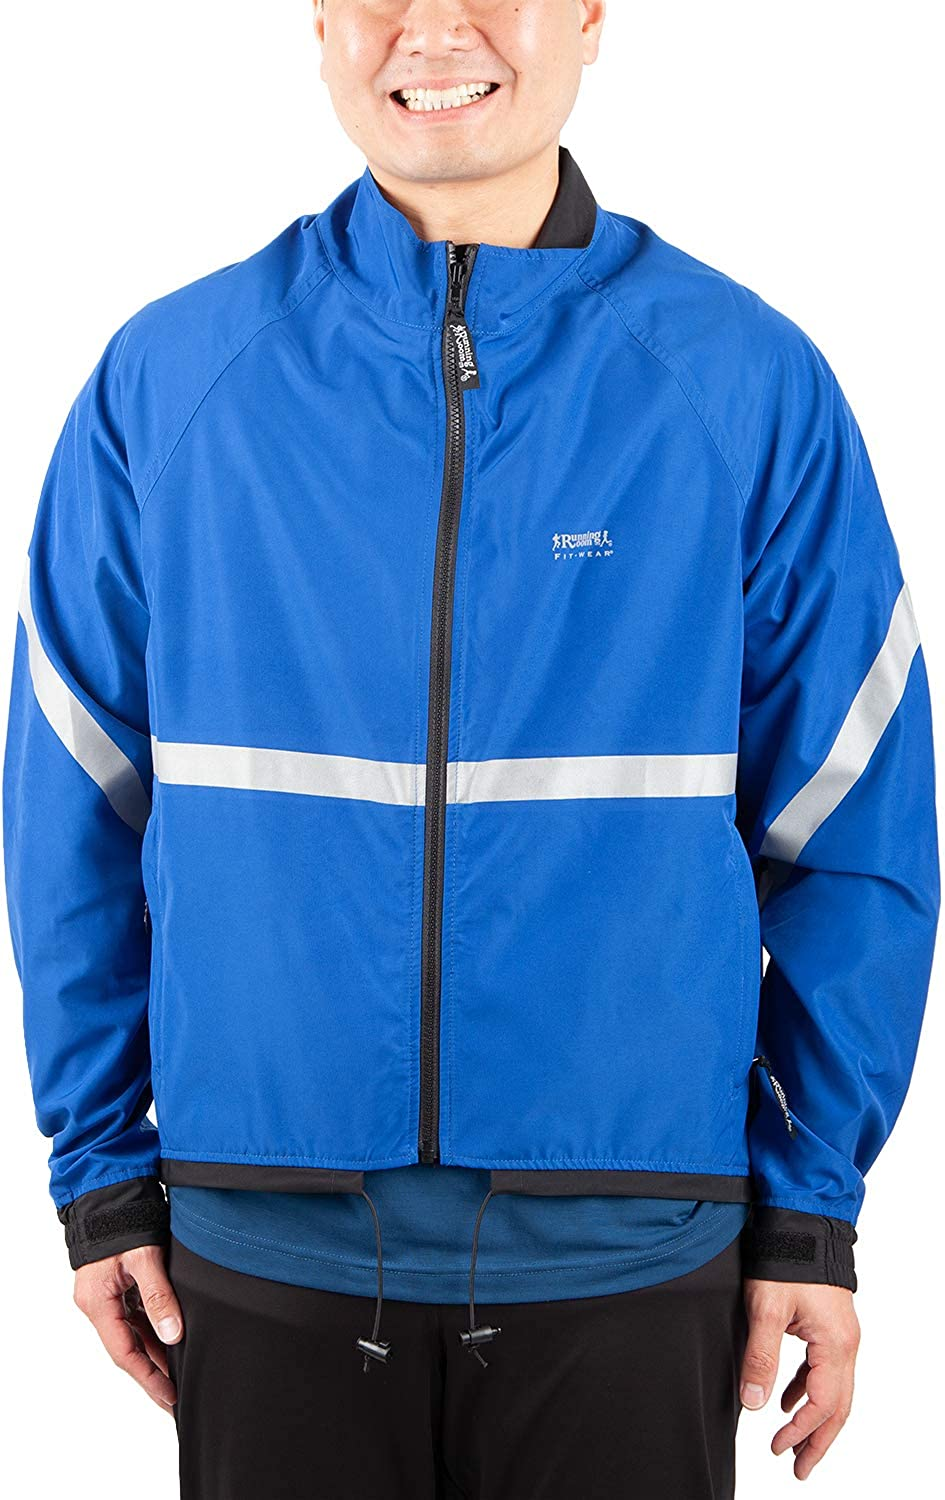 Running Room Unisex Reflective Jacket with Pockets (MED, Royal bluee)